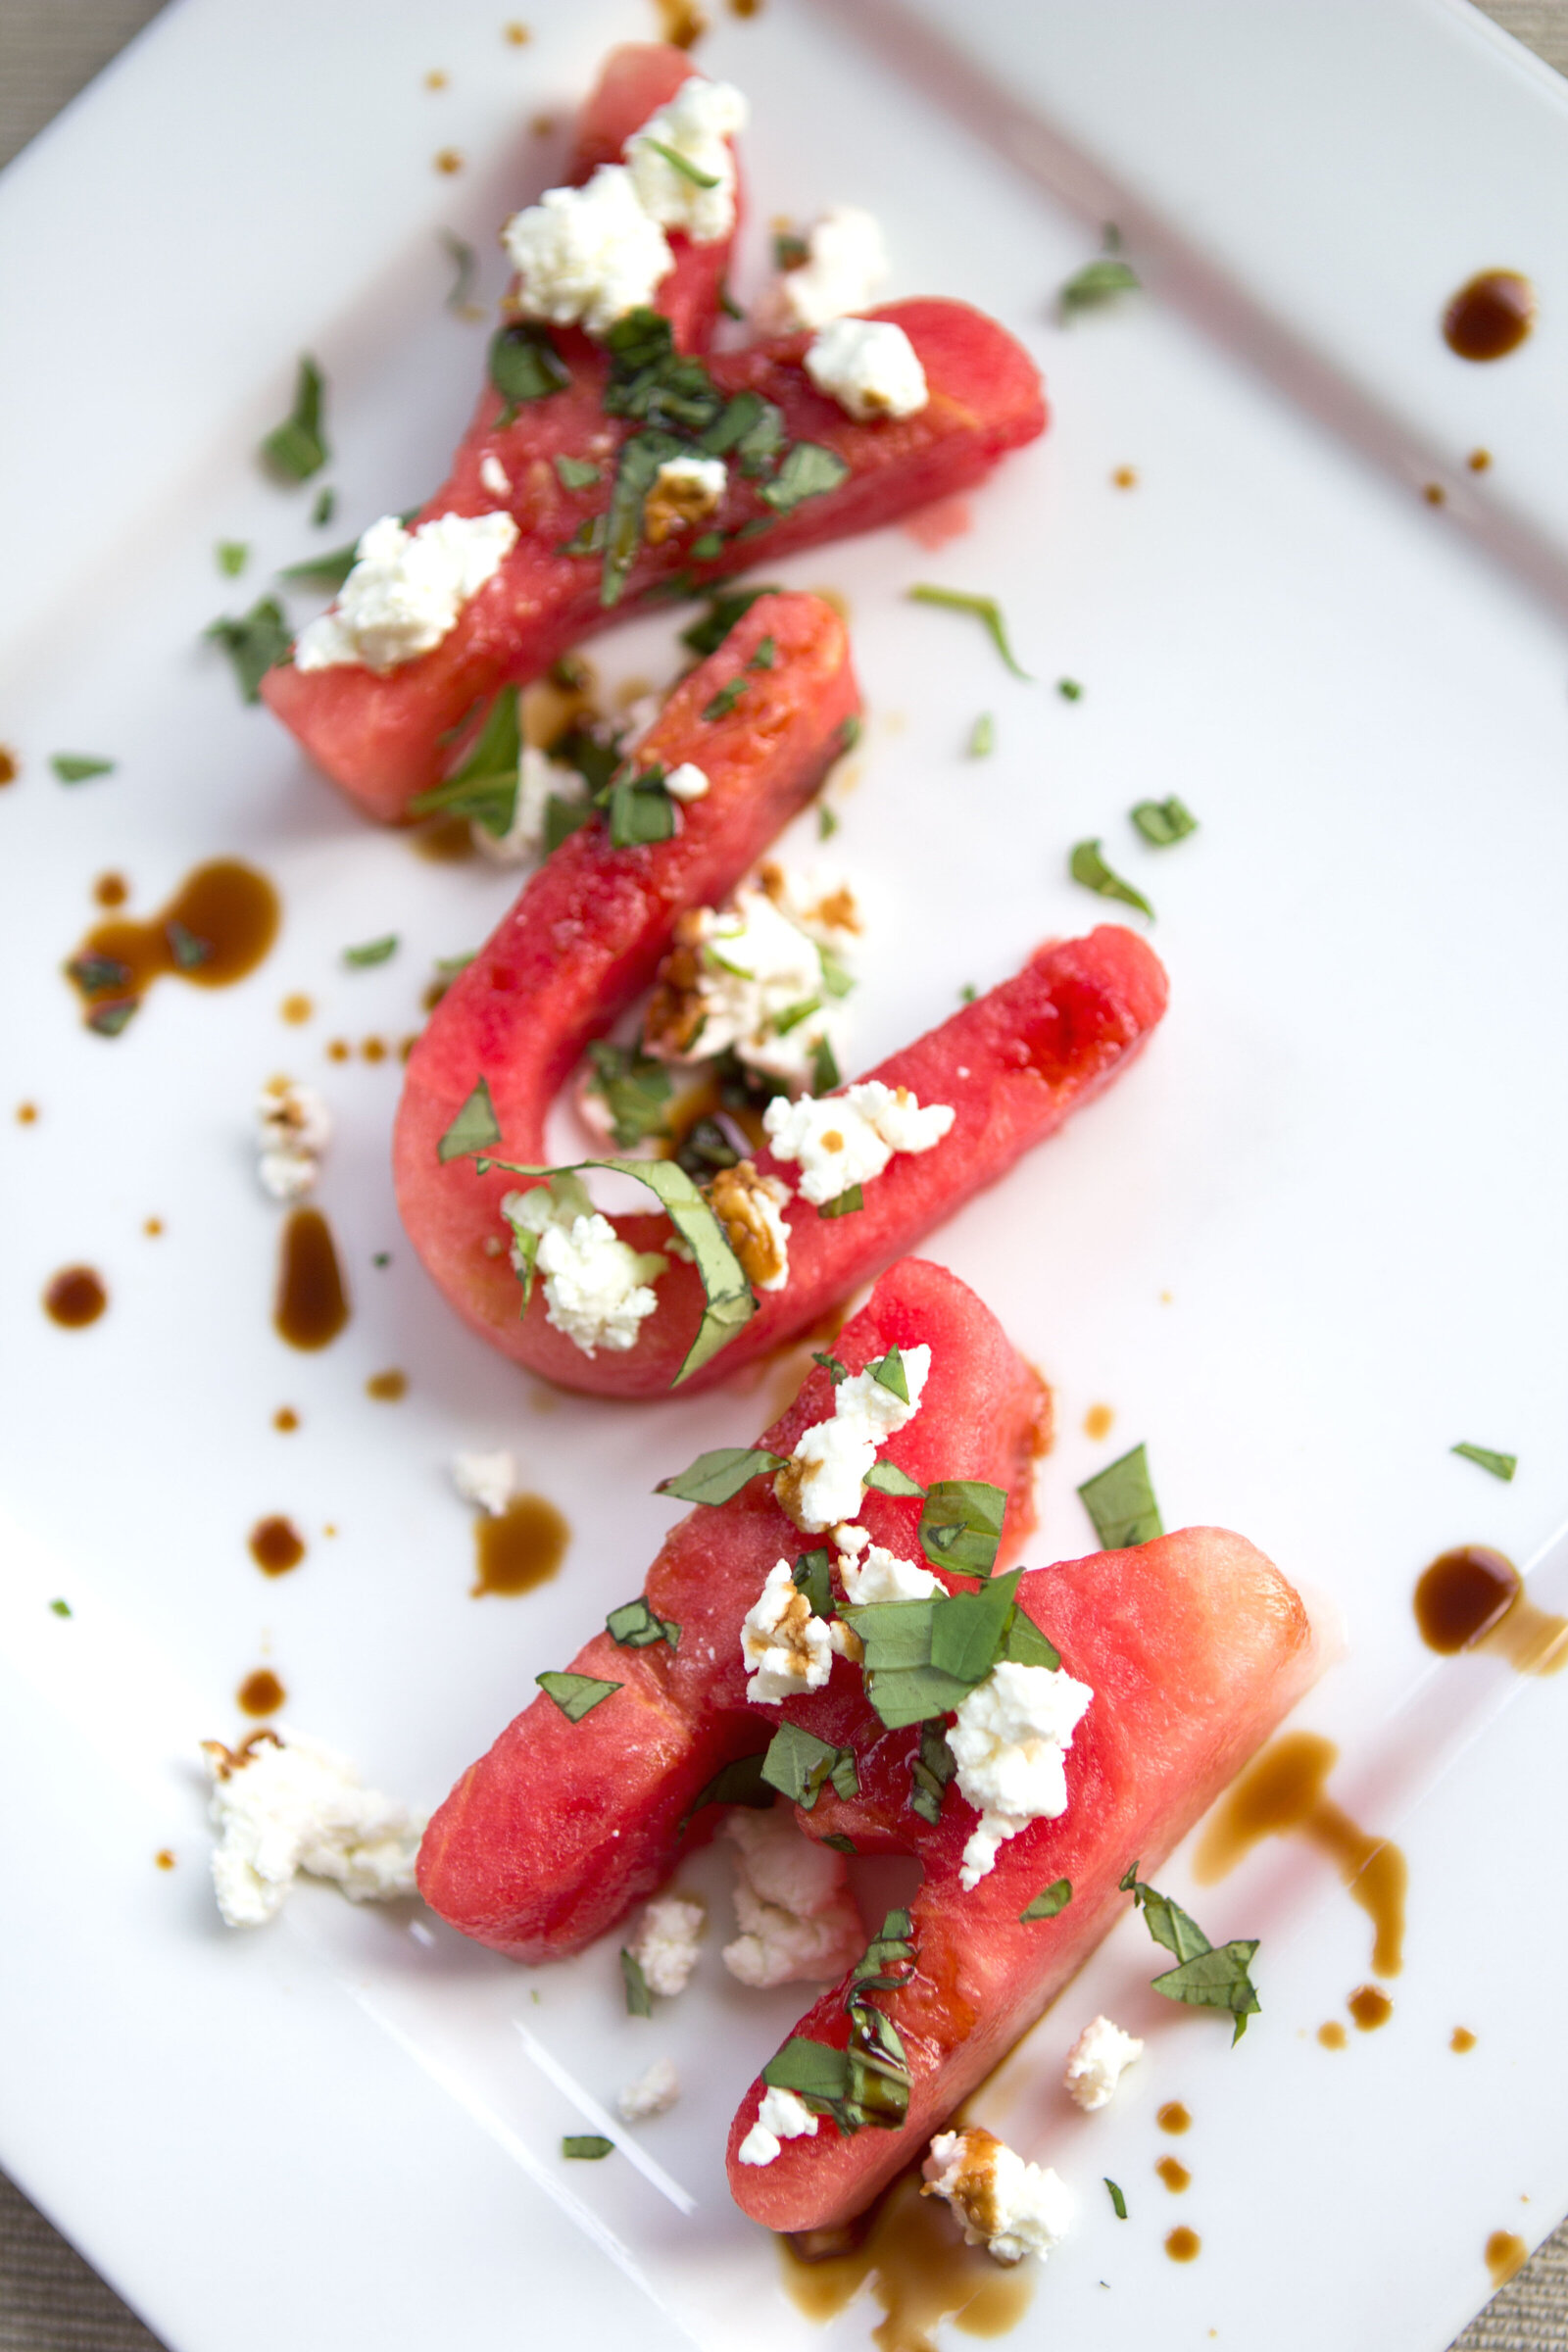 basil-watermelon-goat-cheese-salad-thesarahjohnson-5 (2) copy